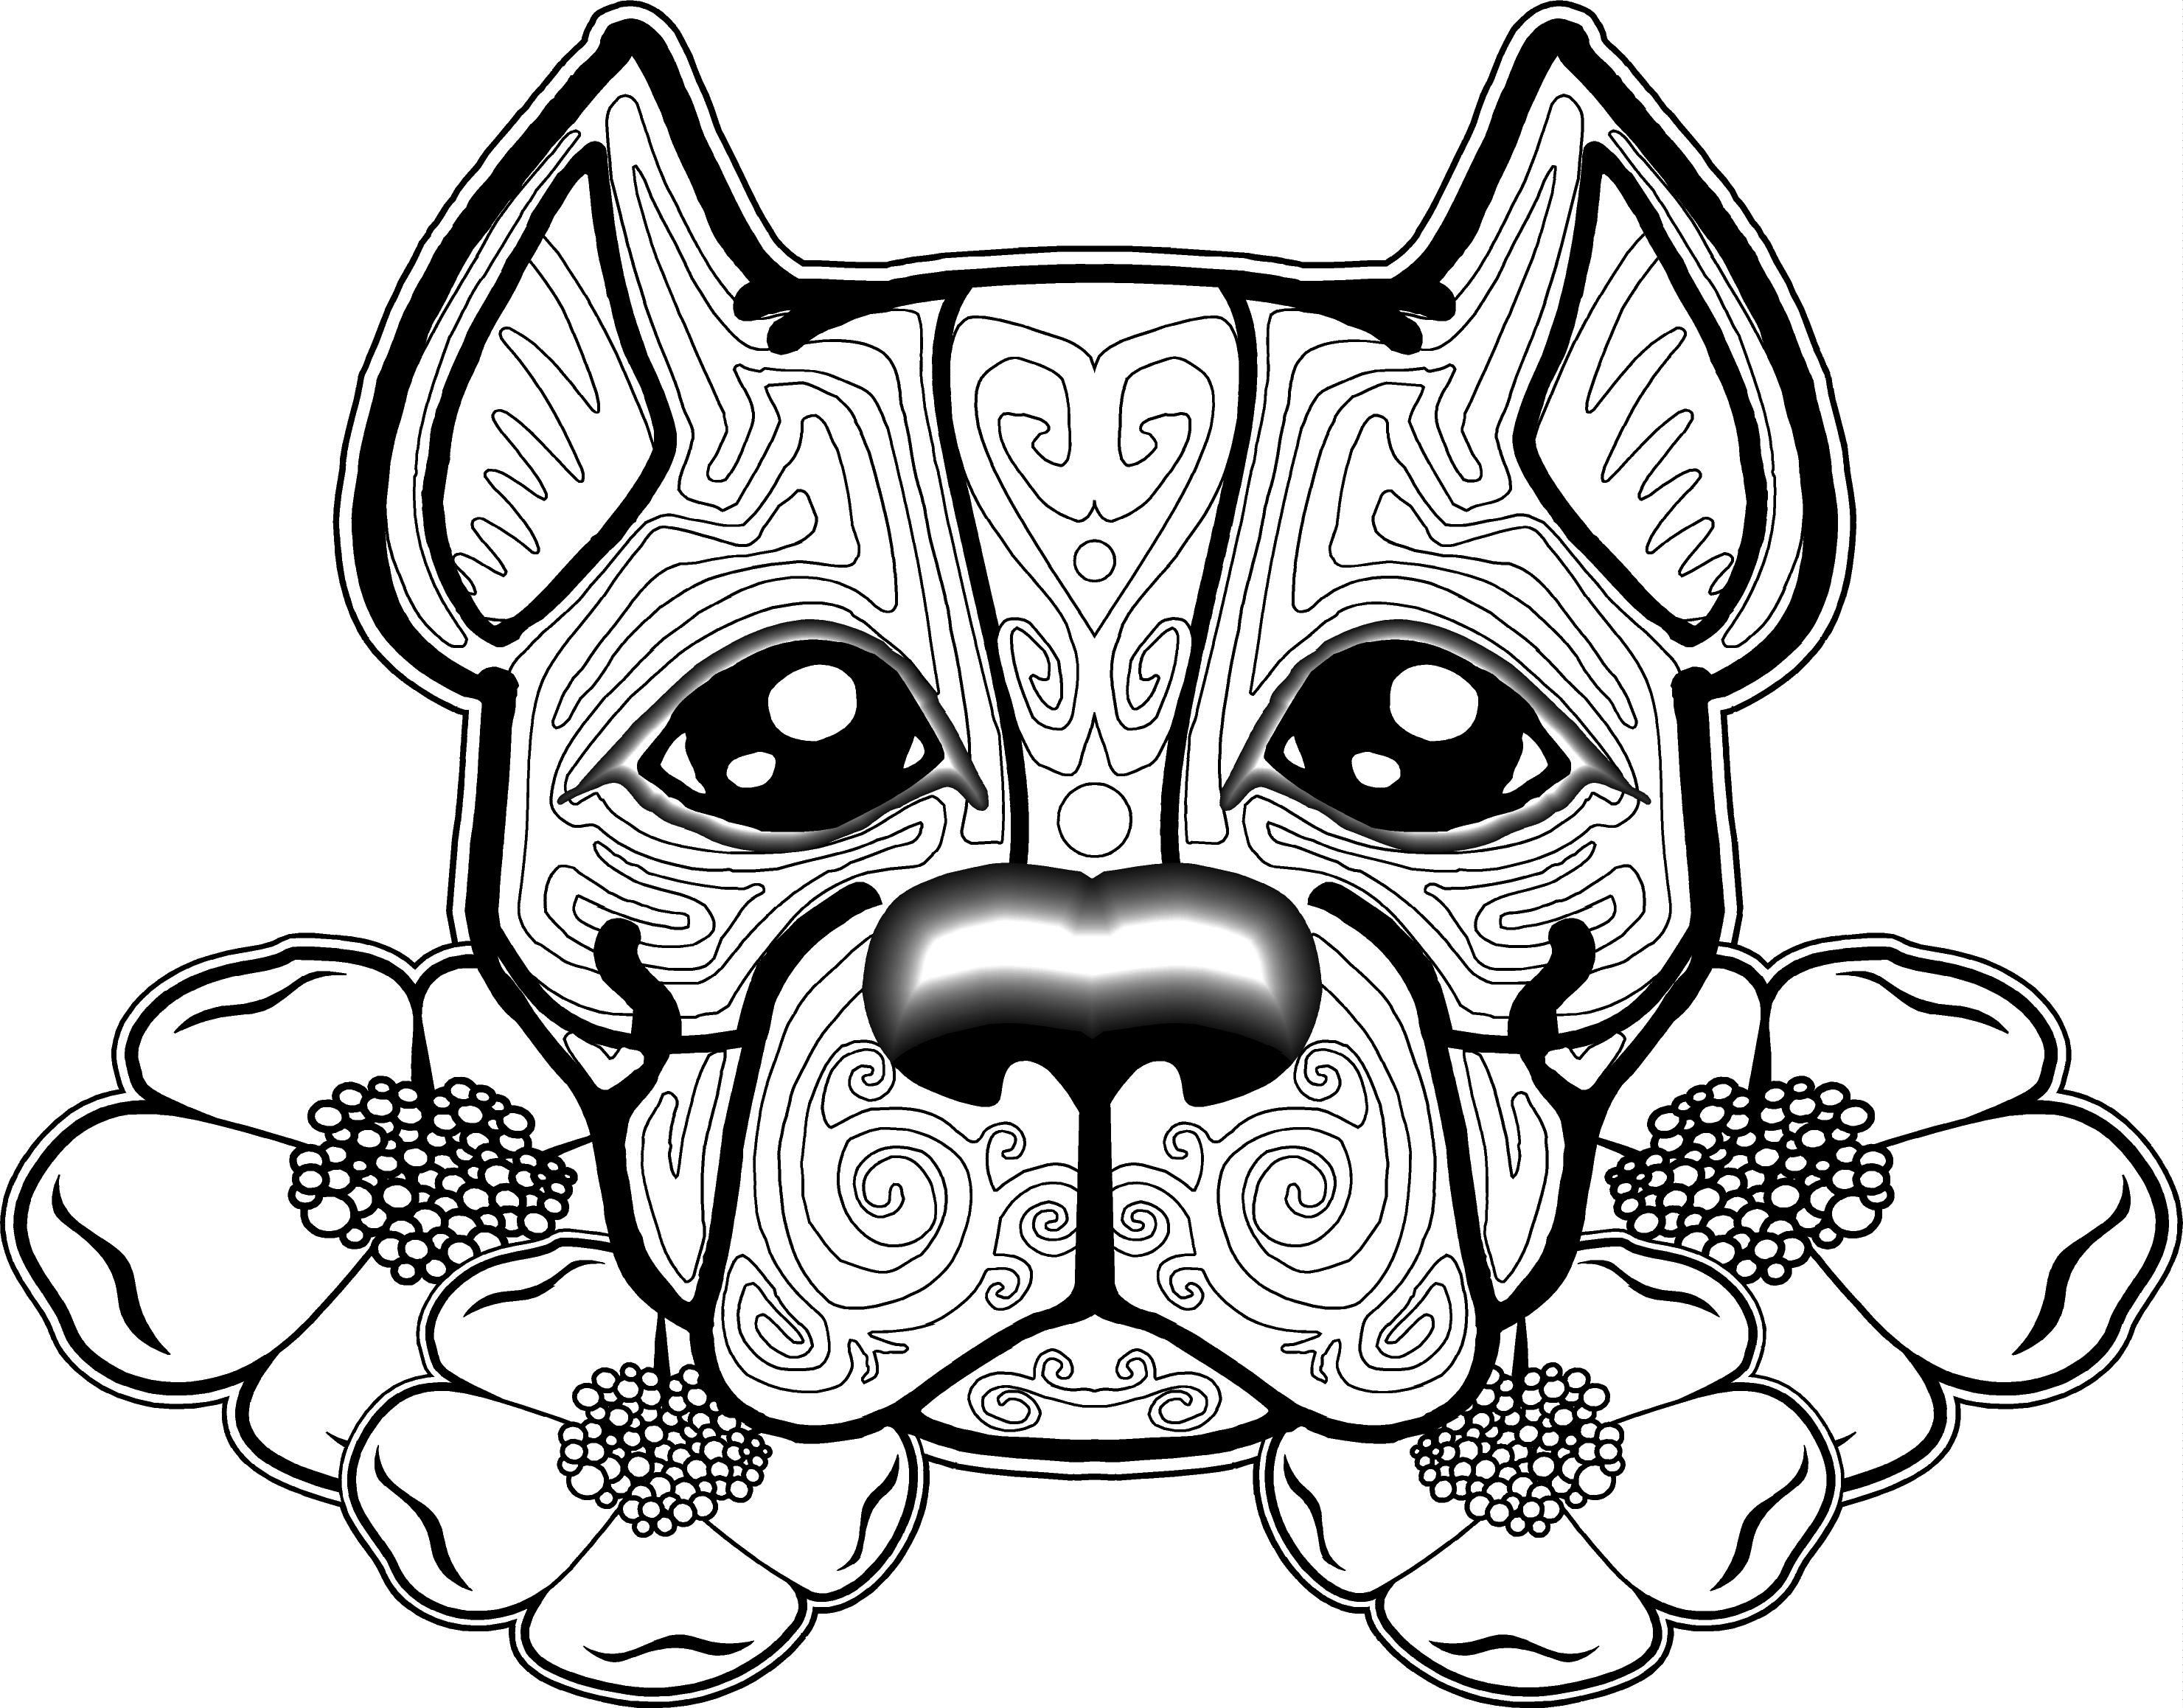 free dog coloring pages for adults - Free Dog Coloring Pages